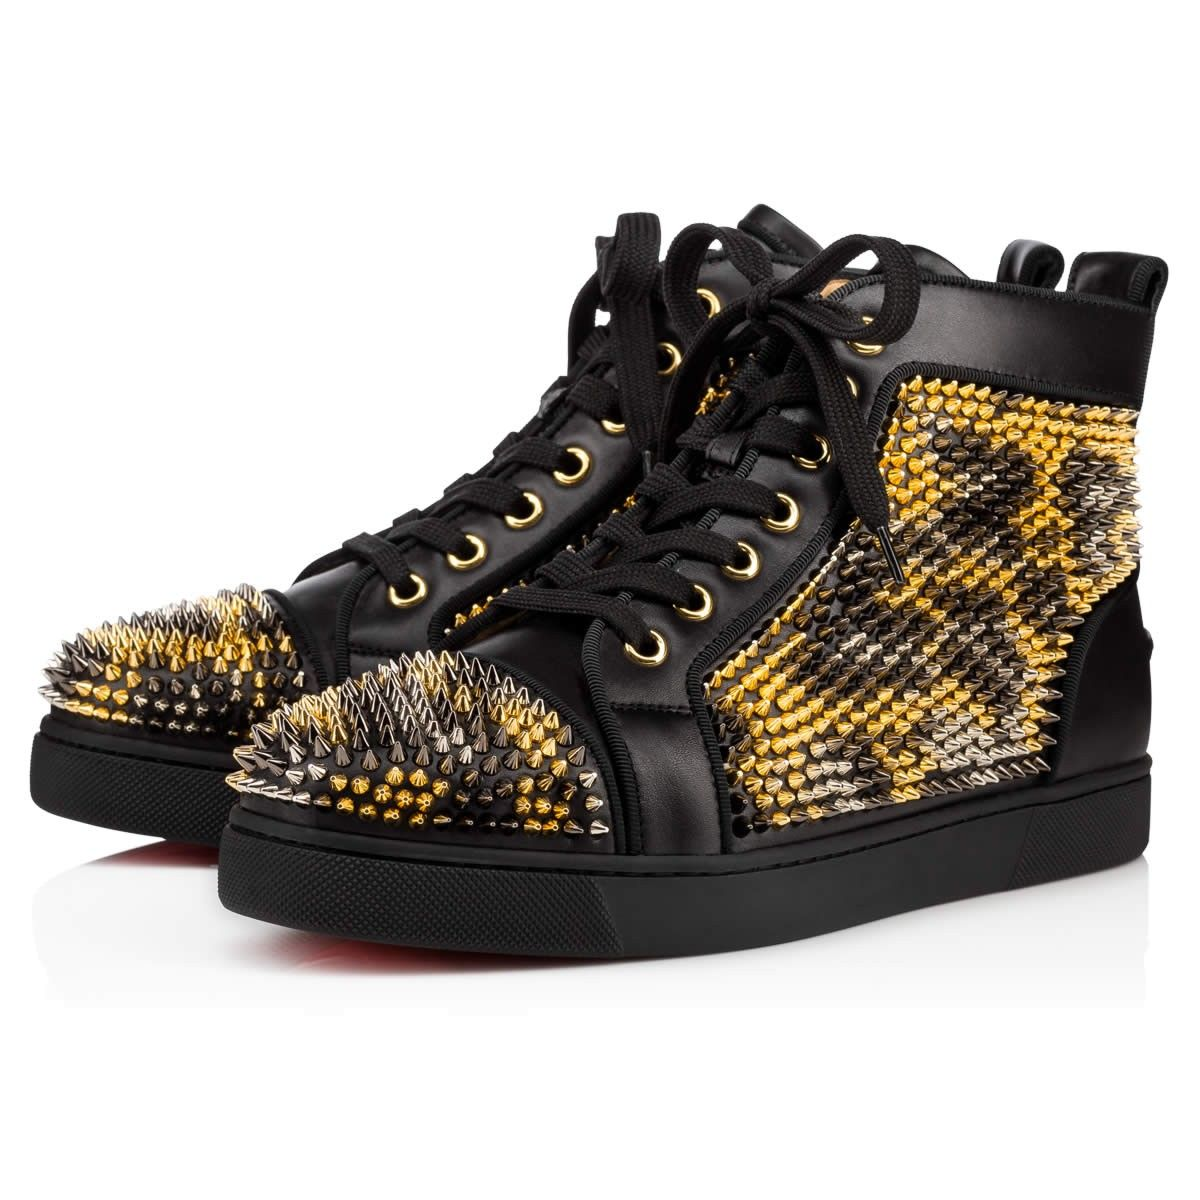 CHRISTIAN LOUBOUTIN Louis Spikes Leo Women S Flat Version Leopard Leather - Women  Shoes - Christian Louboutin.  christianlouboutin  shoes   c356fb81f8